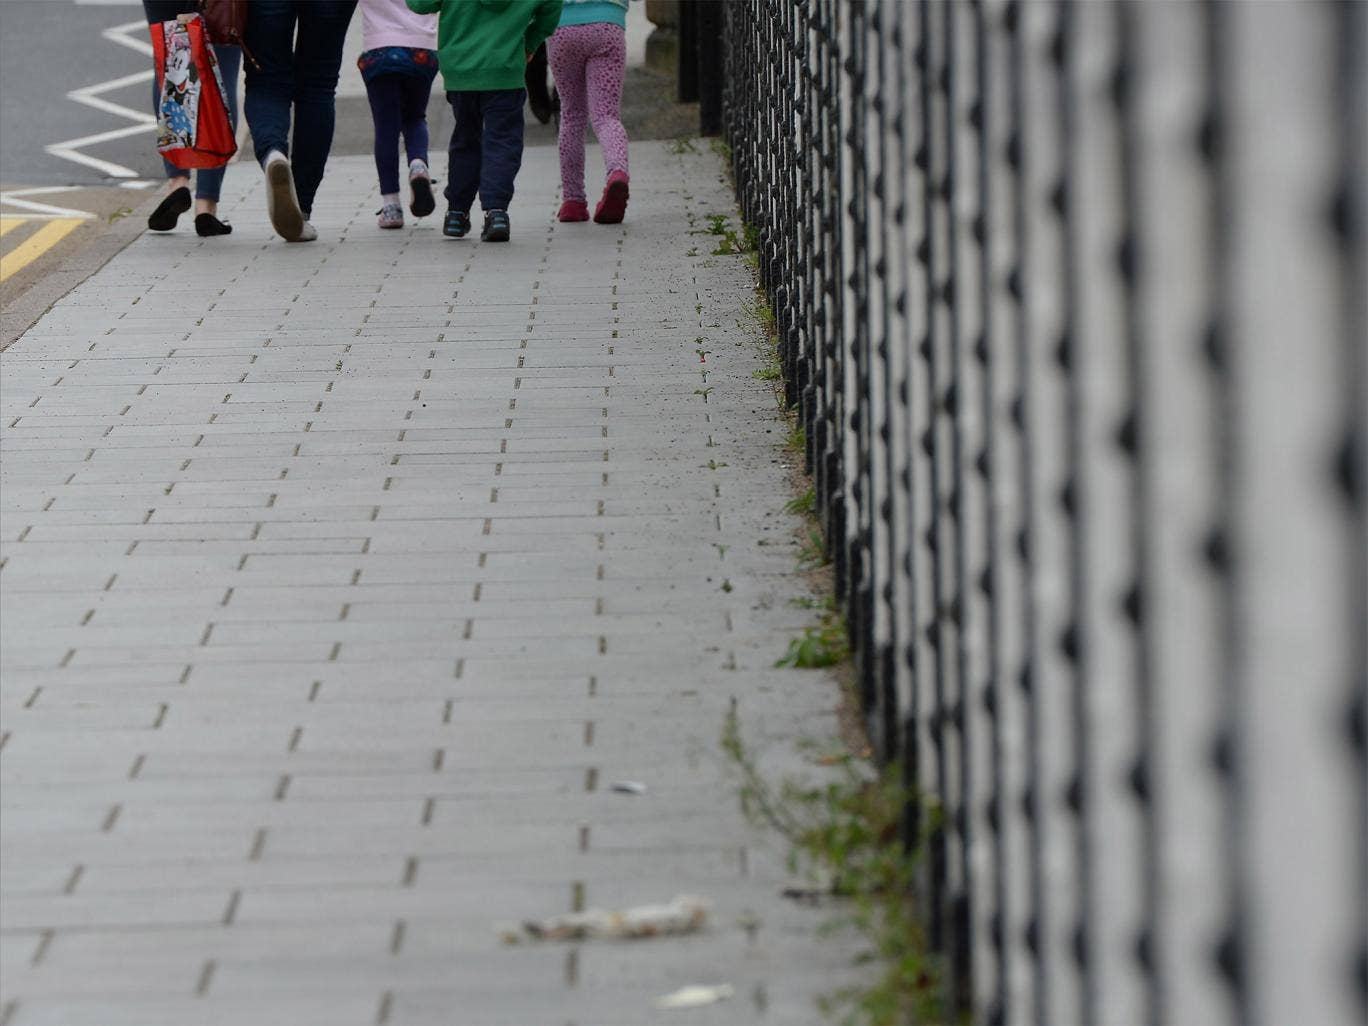 Children walk down a street in Rotherham, South Yorkshire